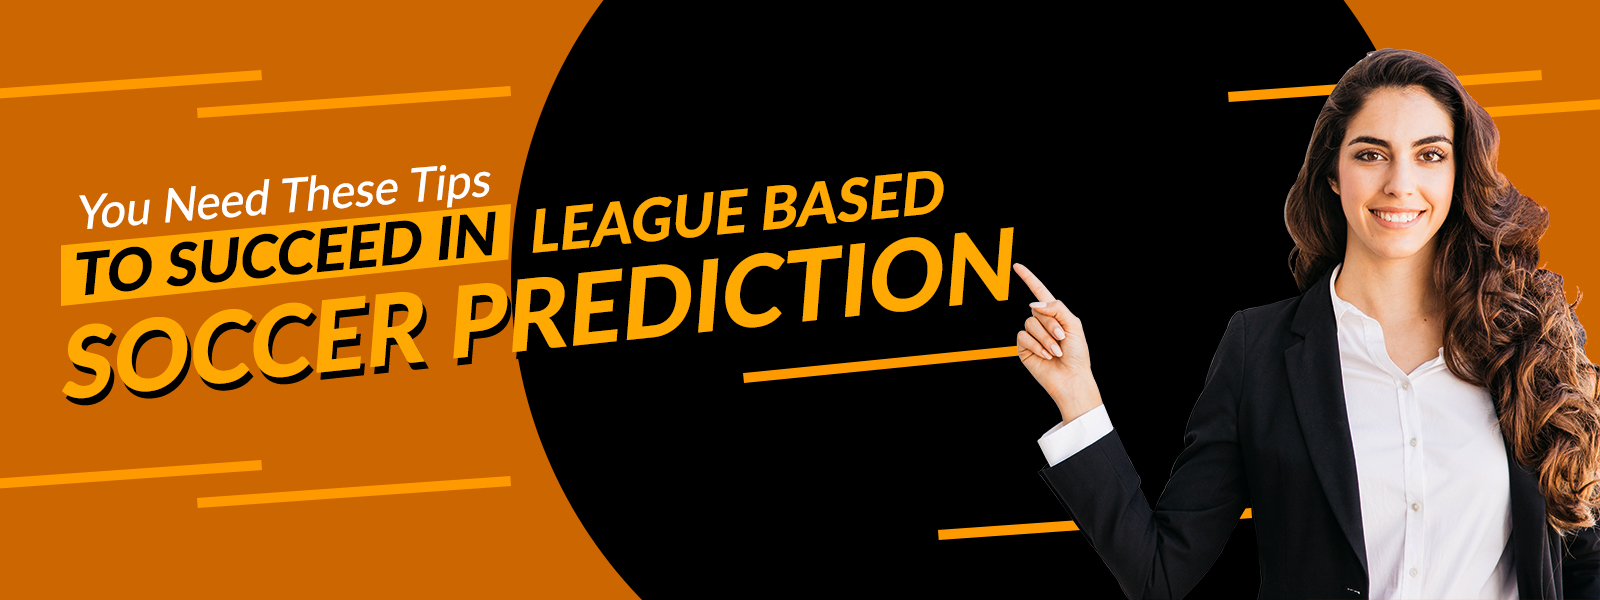 You Need These Tips to Succeed in League based Soccer Prediction